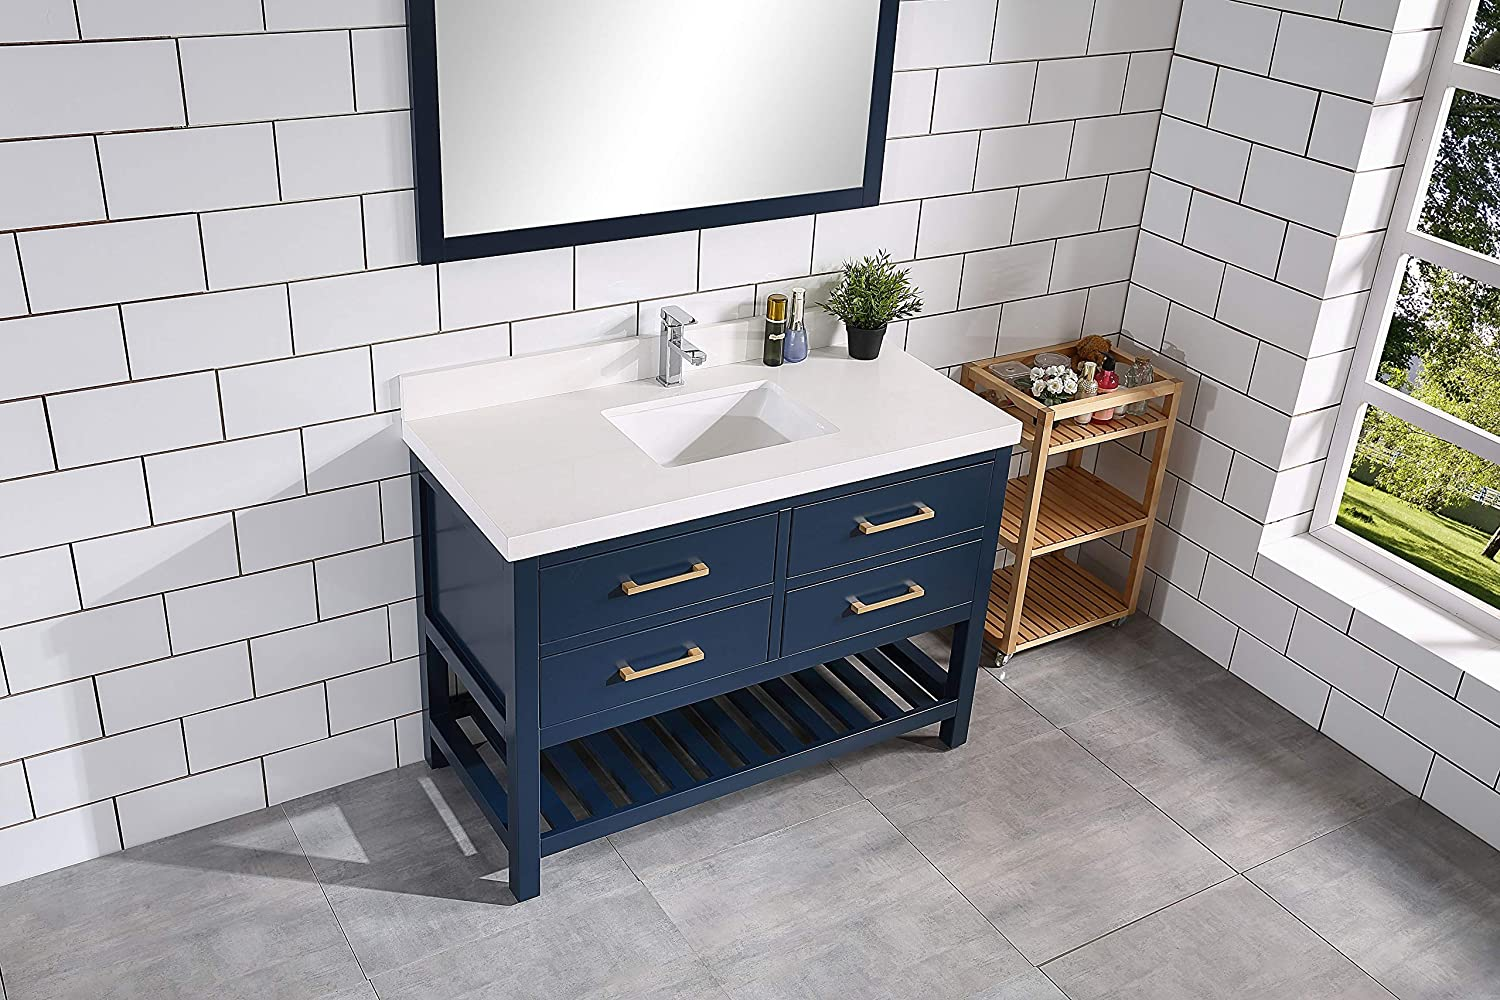 Willow Collections Santa Fe 84 in 84 x 22, Hale Navy Blue HARDWOOD CONSTRUCTION W x 22 in D Vanity in Hale Navy Blue with White Quartz and White Basins